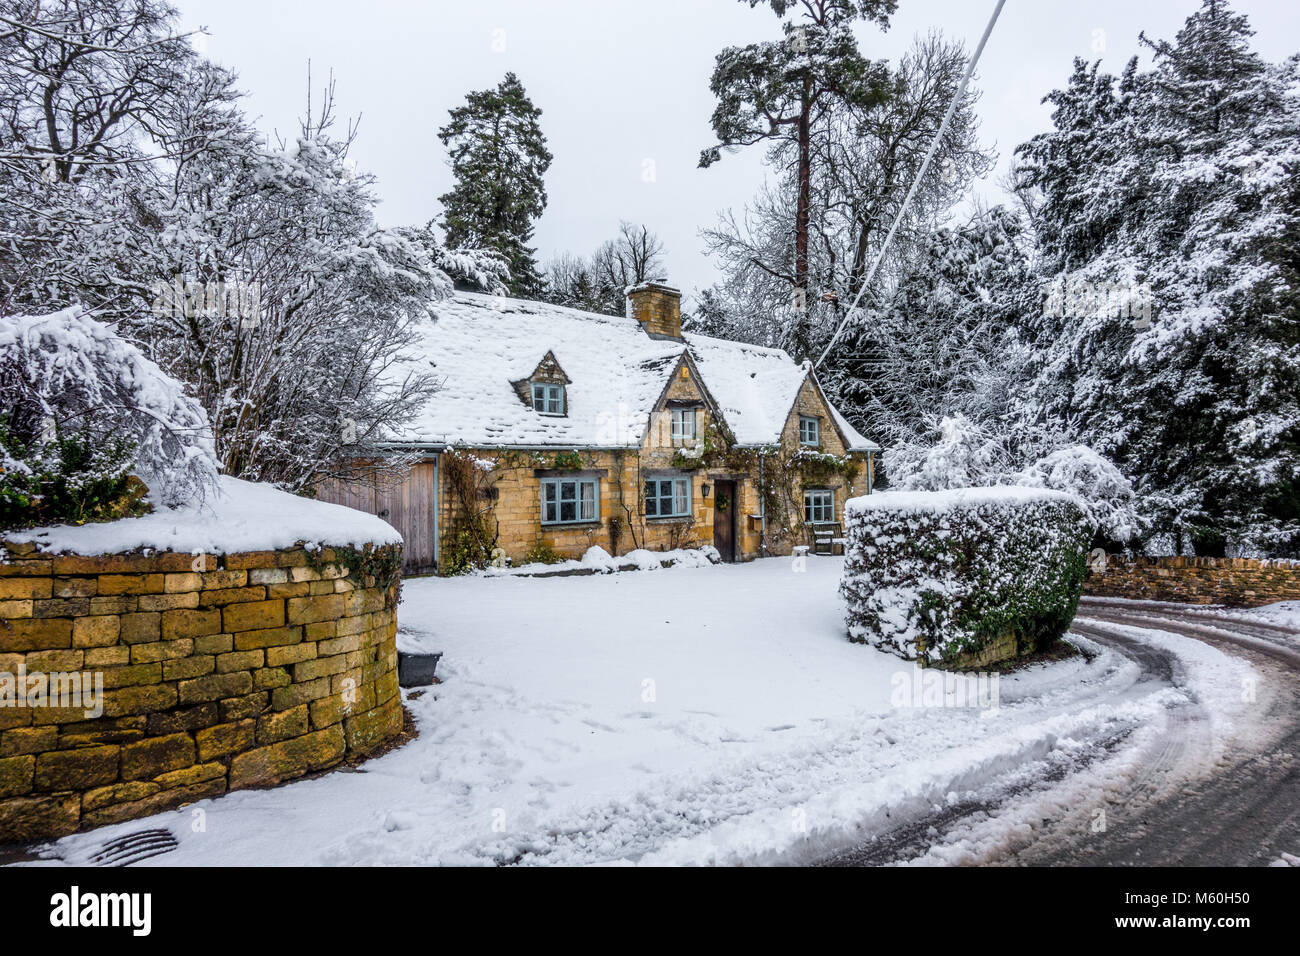 Traditional old Cotswold stone cottage covered in snow - Stock Image